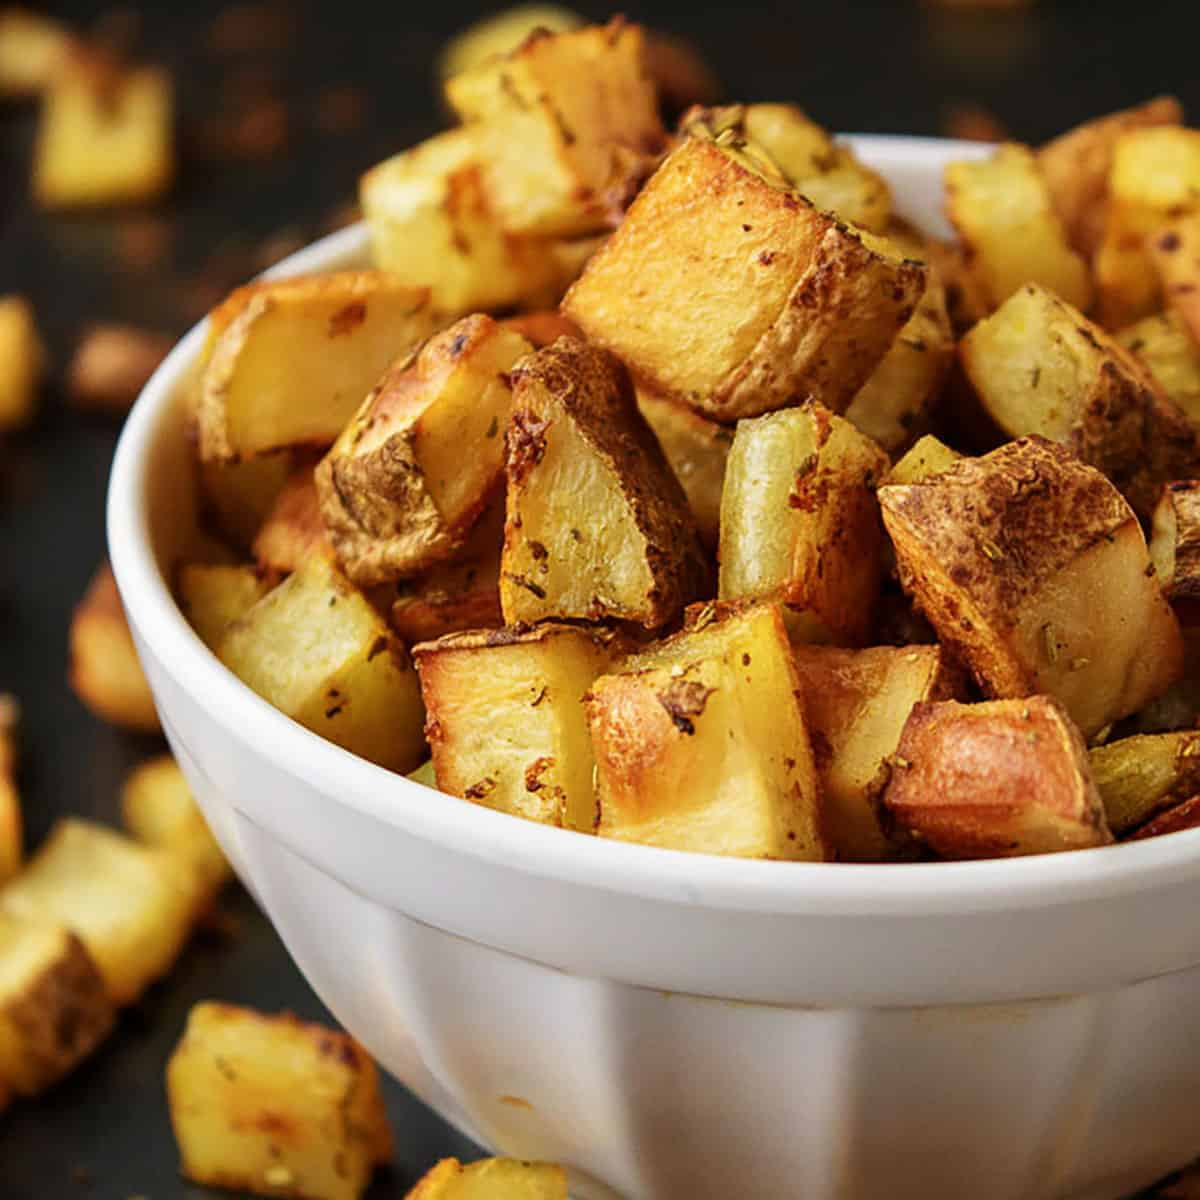 White bowl with oven baked home fries.